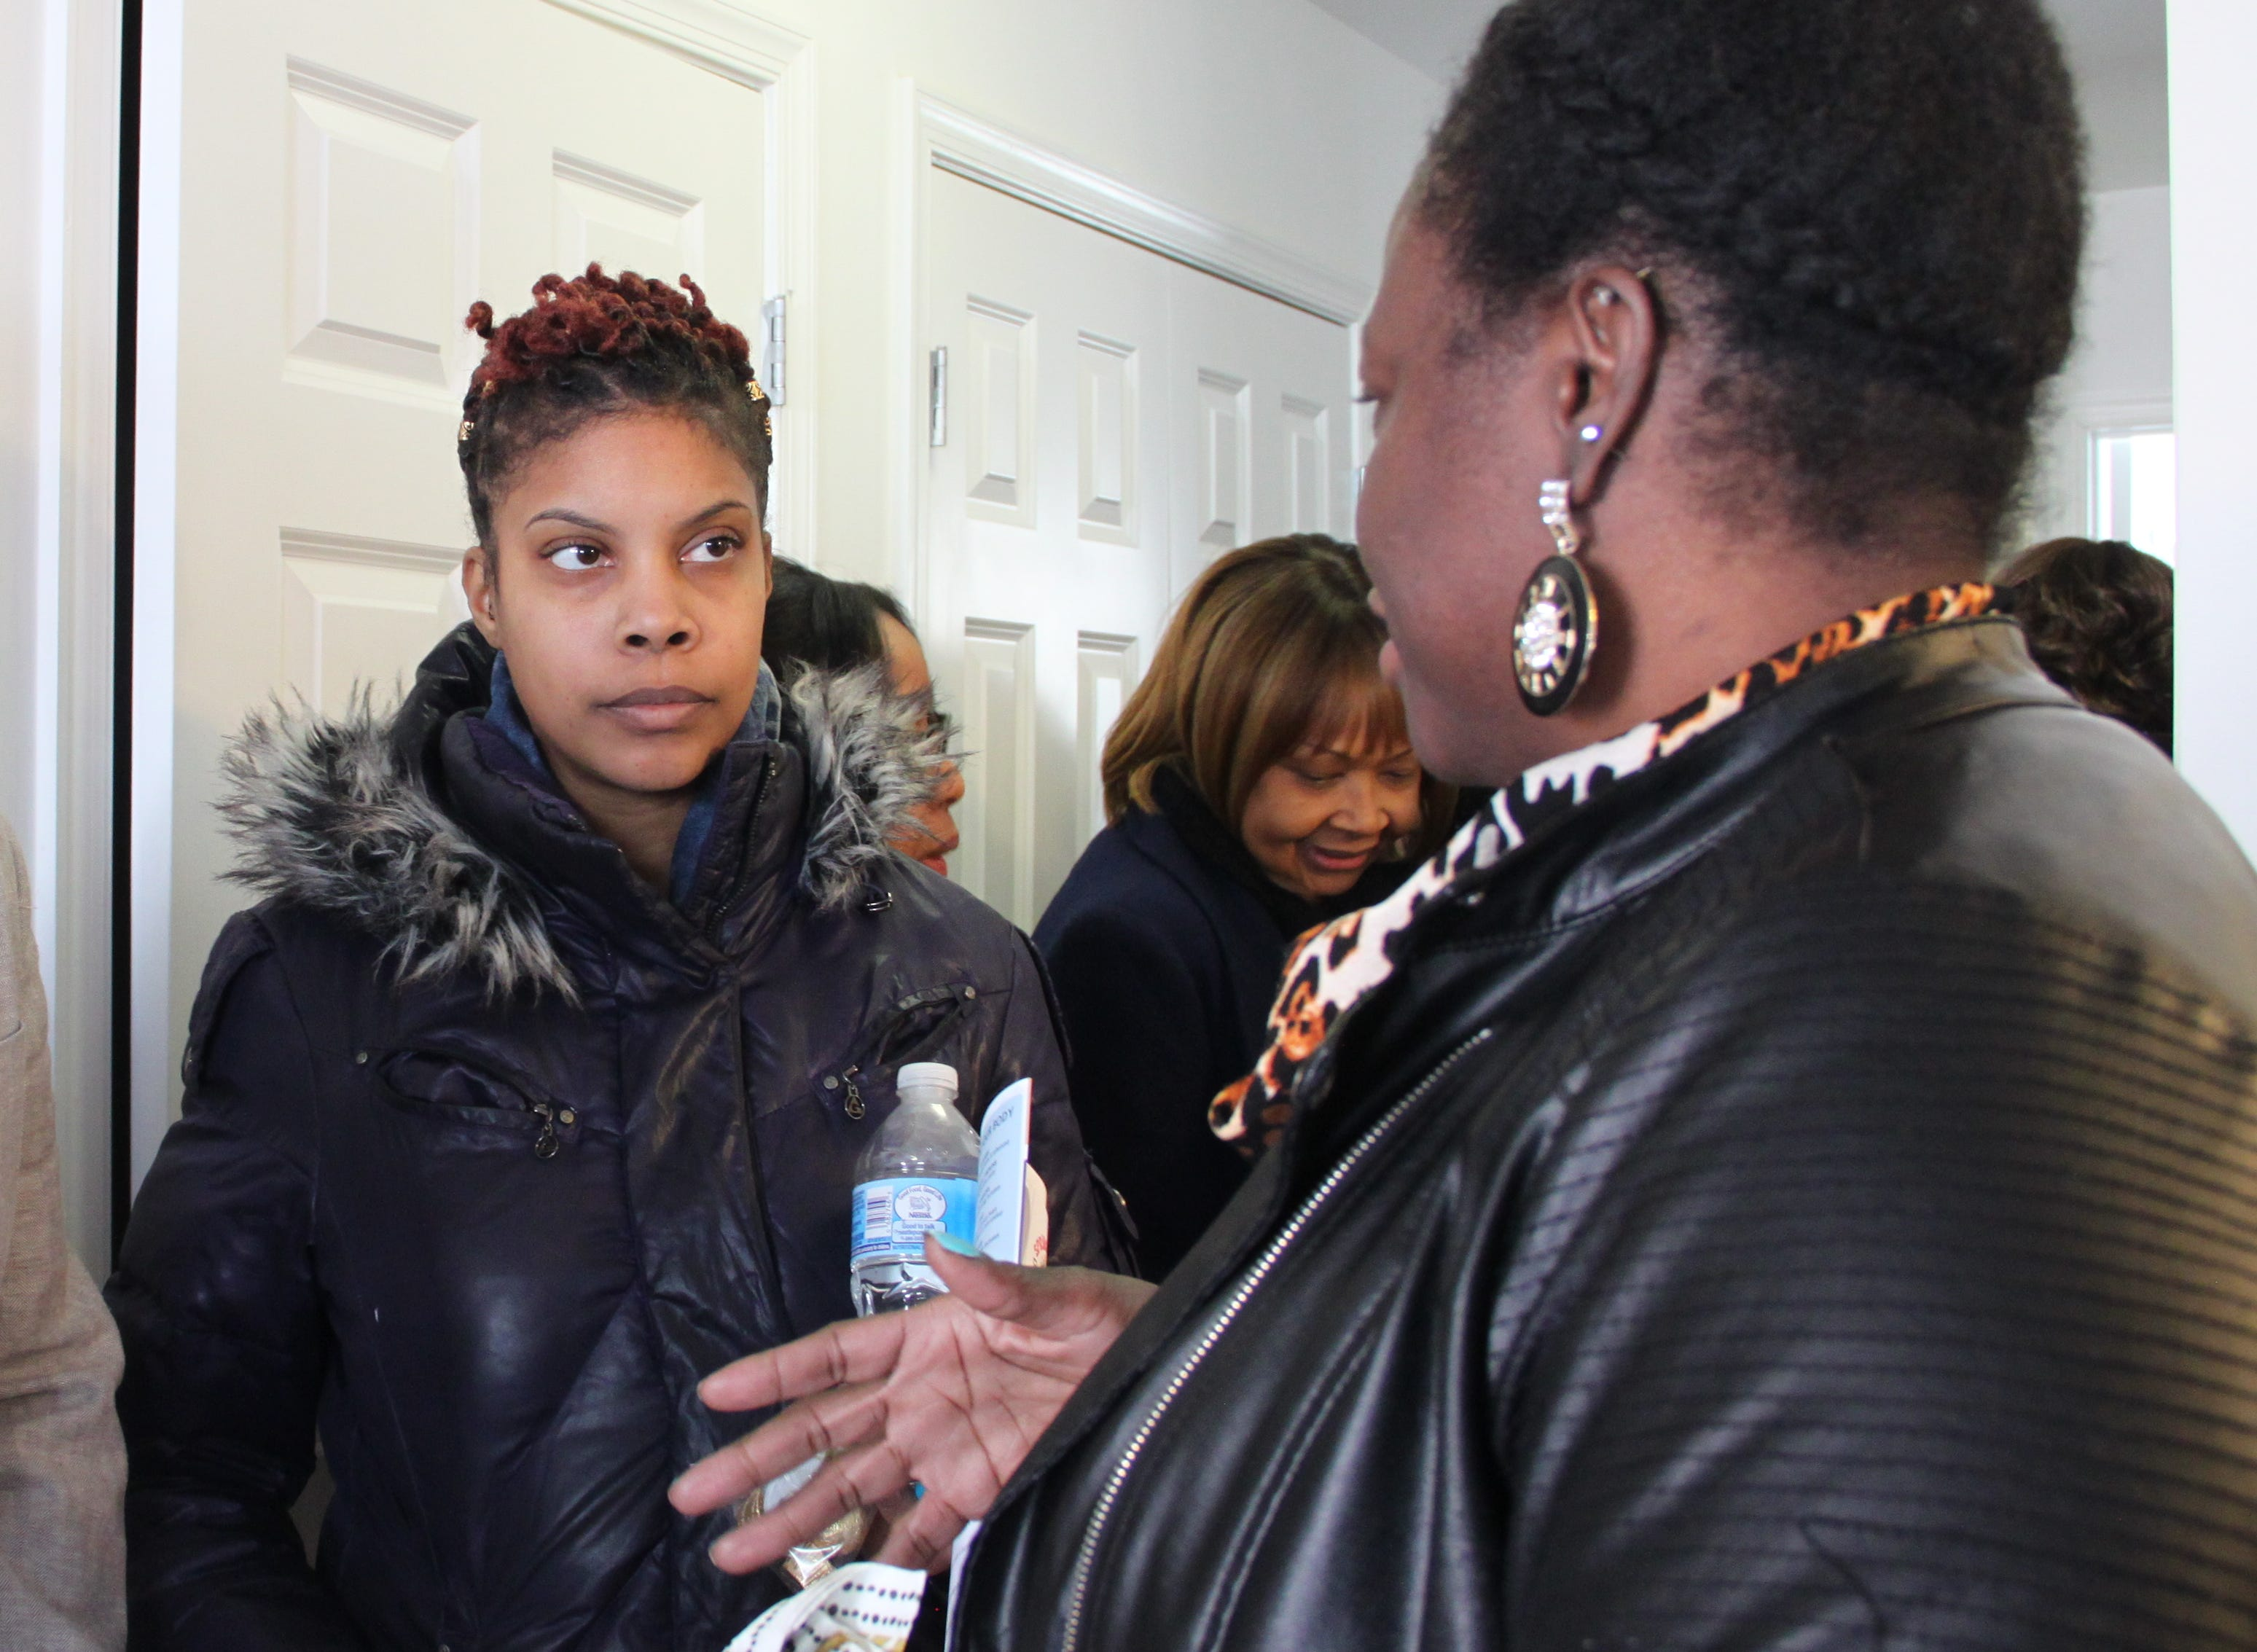 Jalisa White, left, listens to a fellow Riverside public housing resident during a tour of an Annapolis housing development. Similar housing plans could be used in a comprehensive revitalization of the Riverside neighborhood.